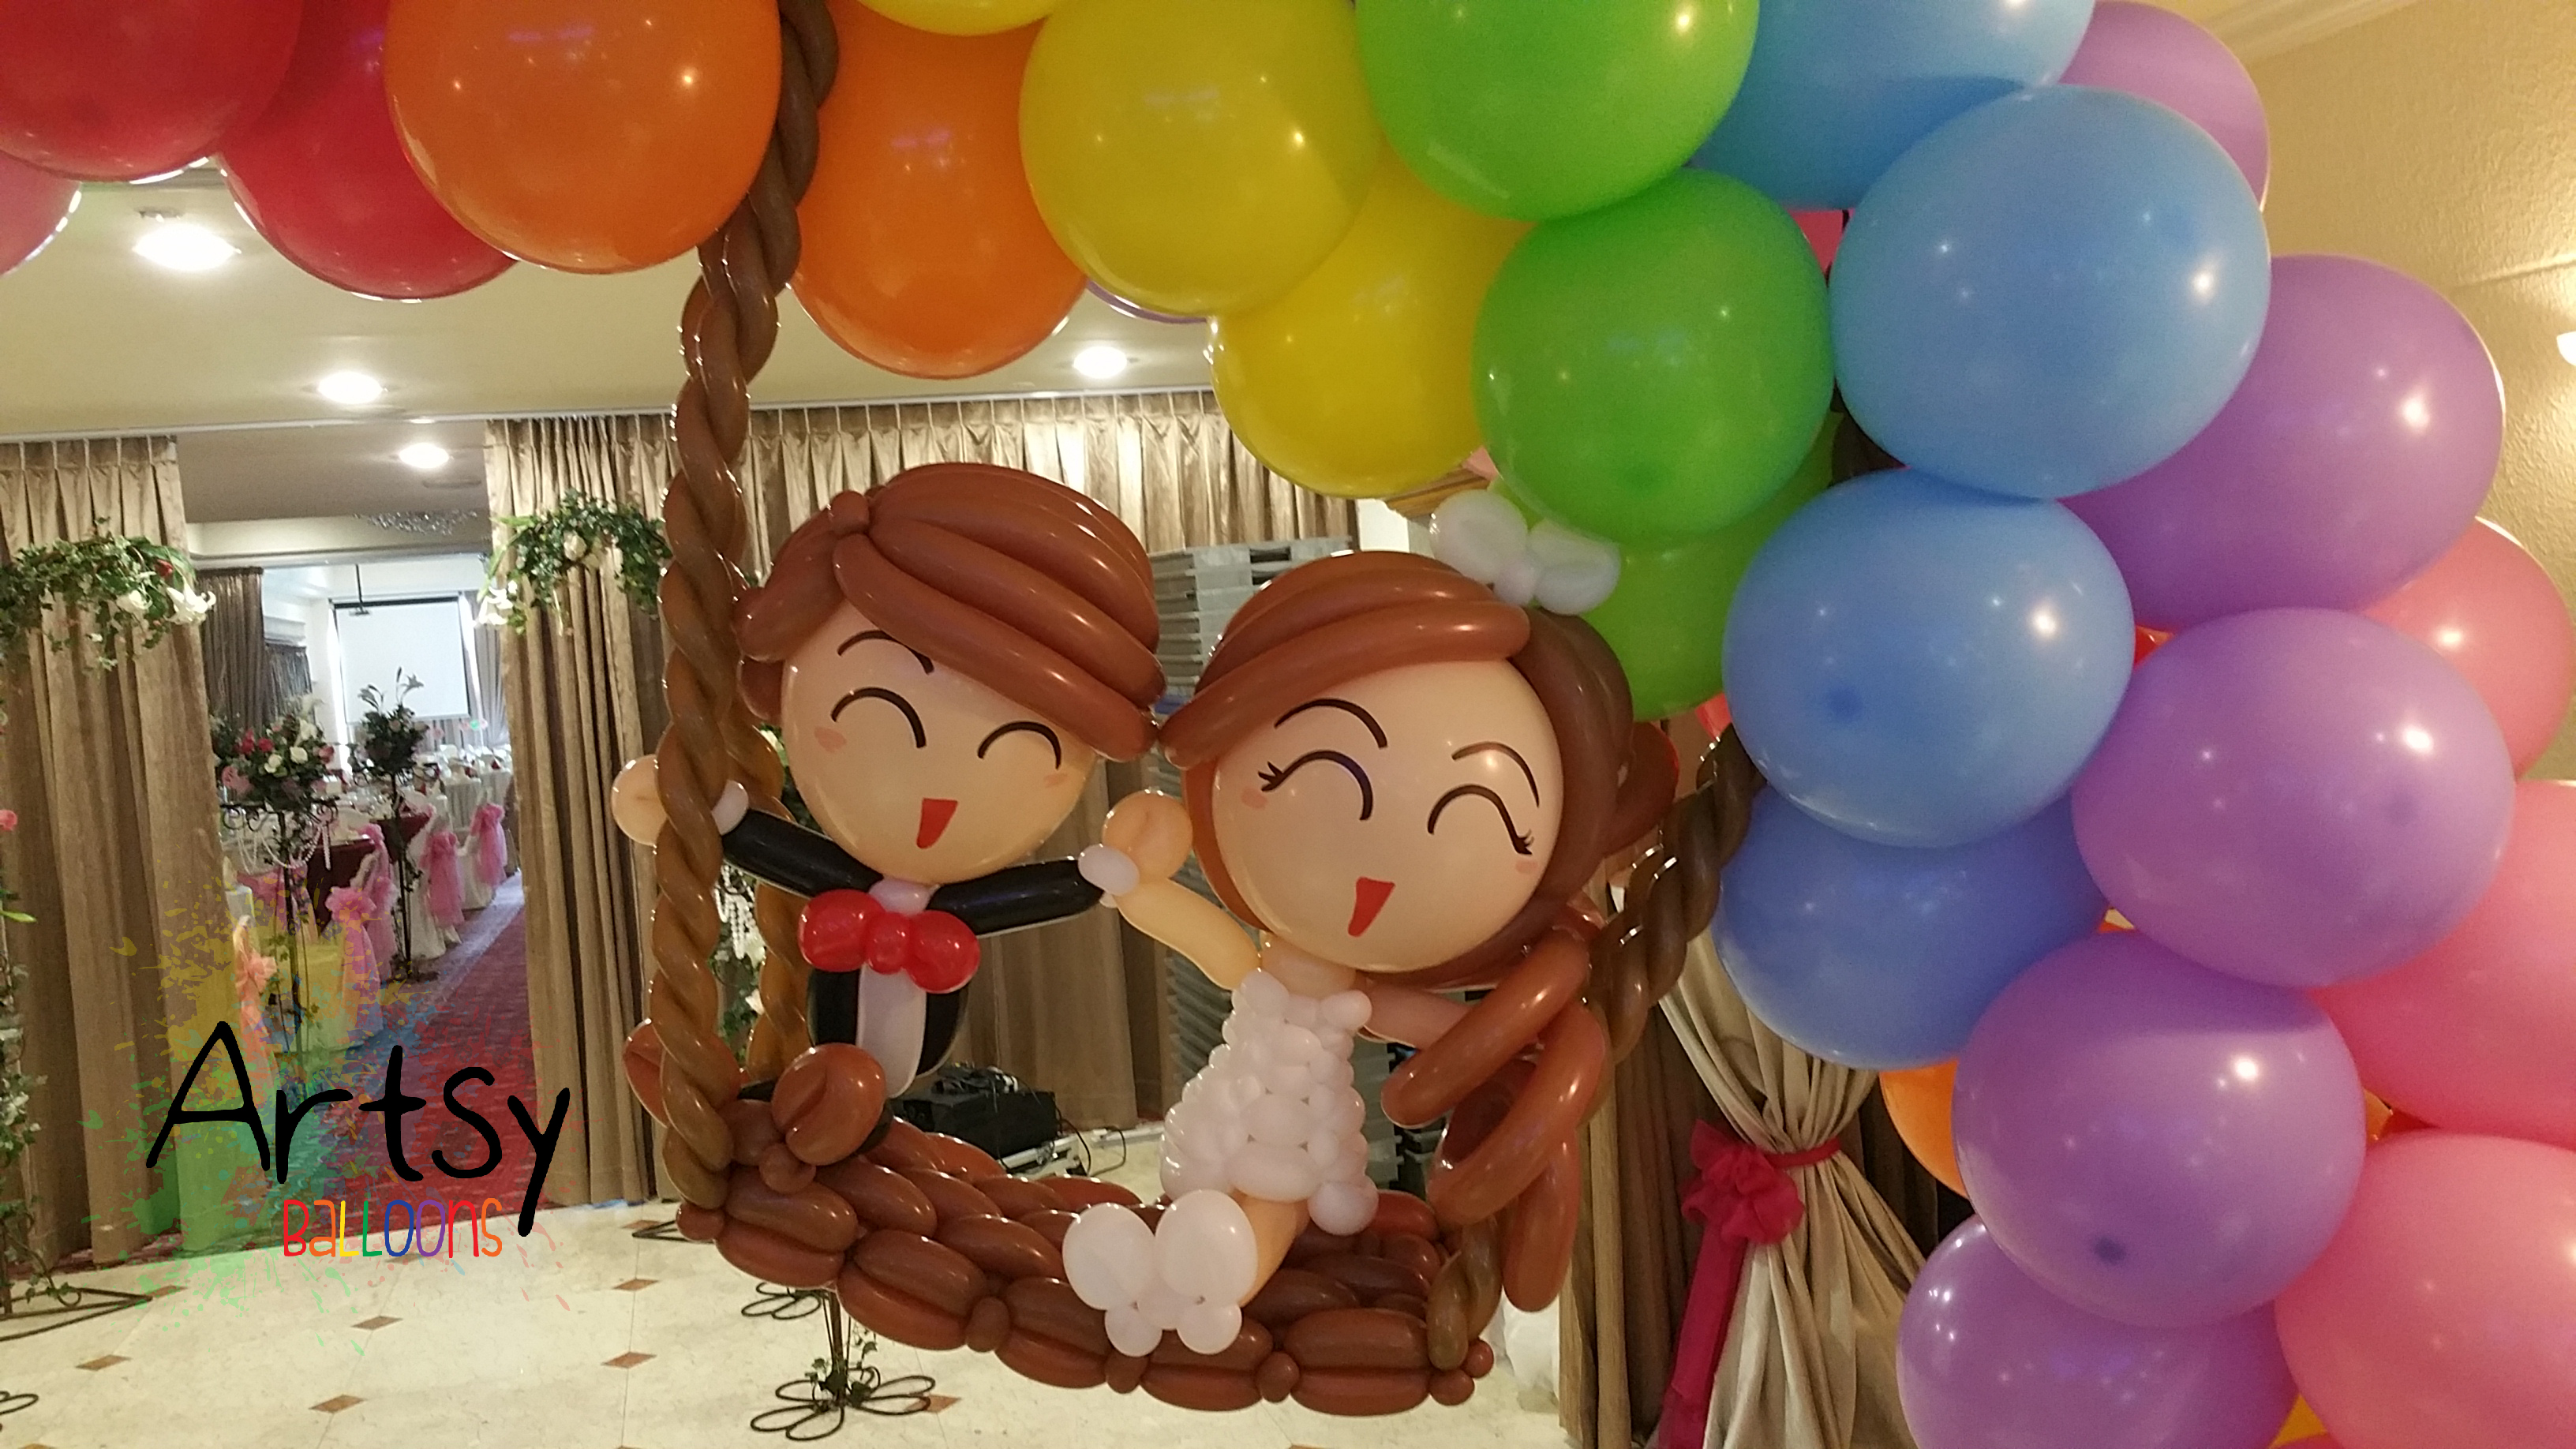 Balloon arch for wedding - Balloon Wedding Couple On Rainbow Balloon Arch 4